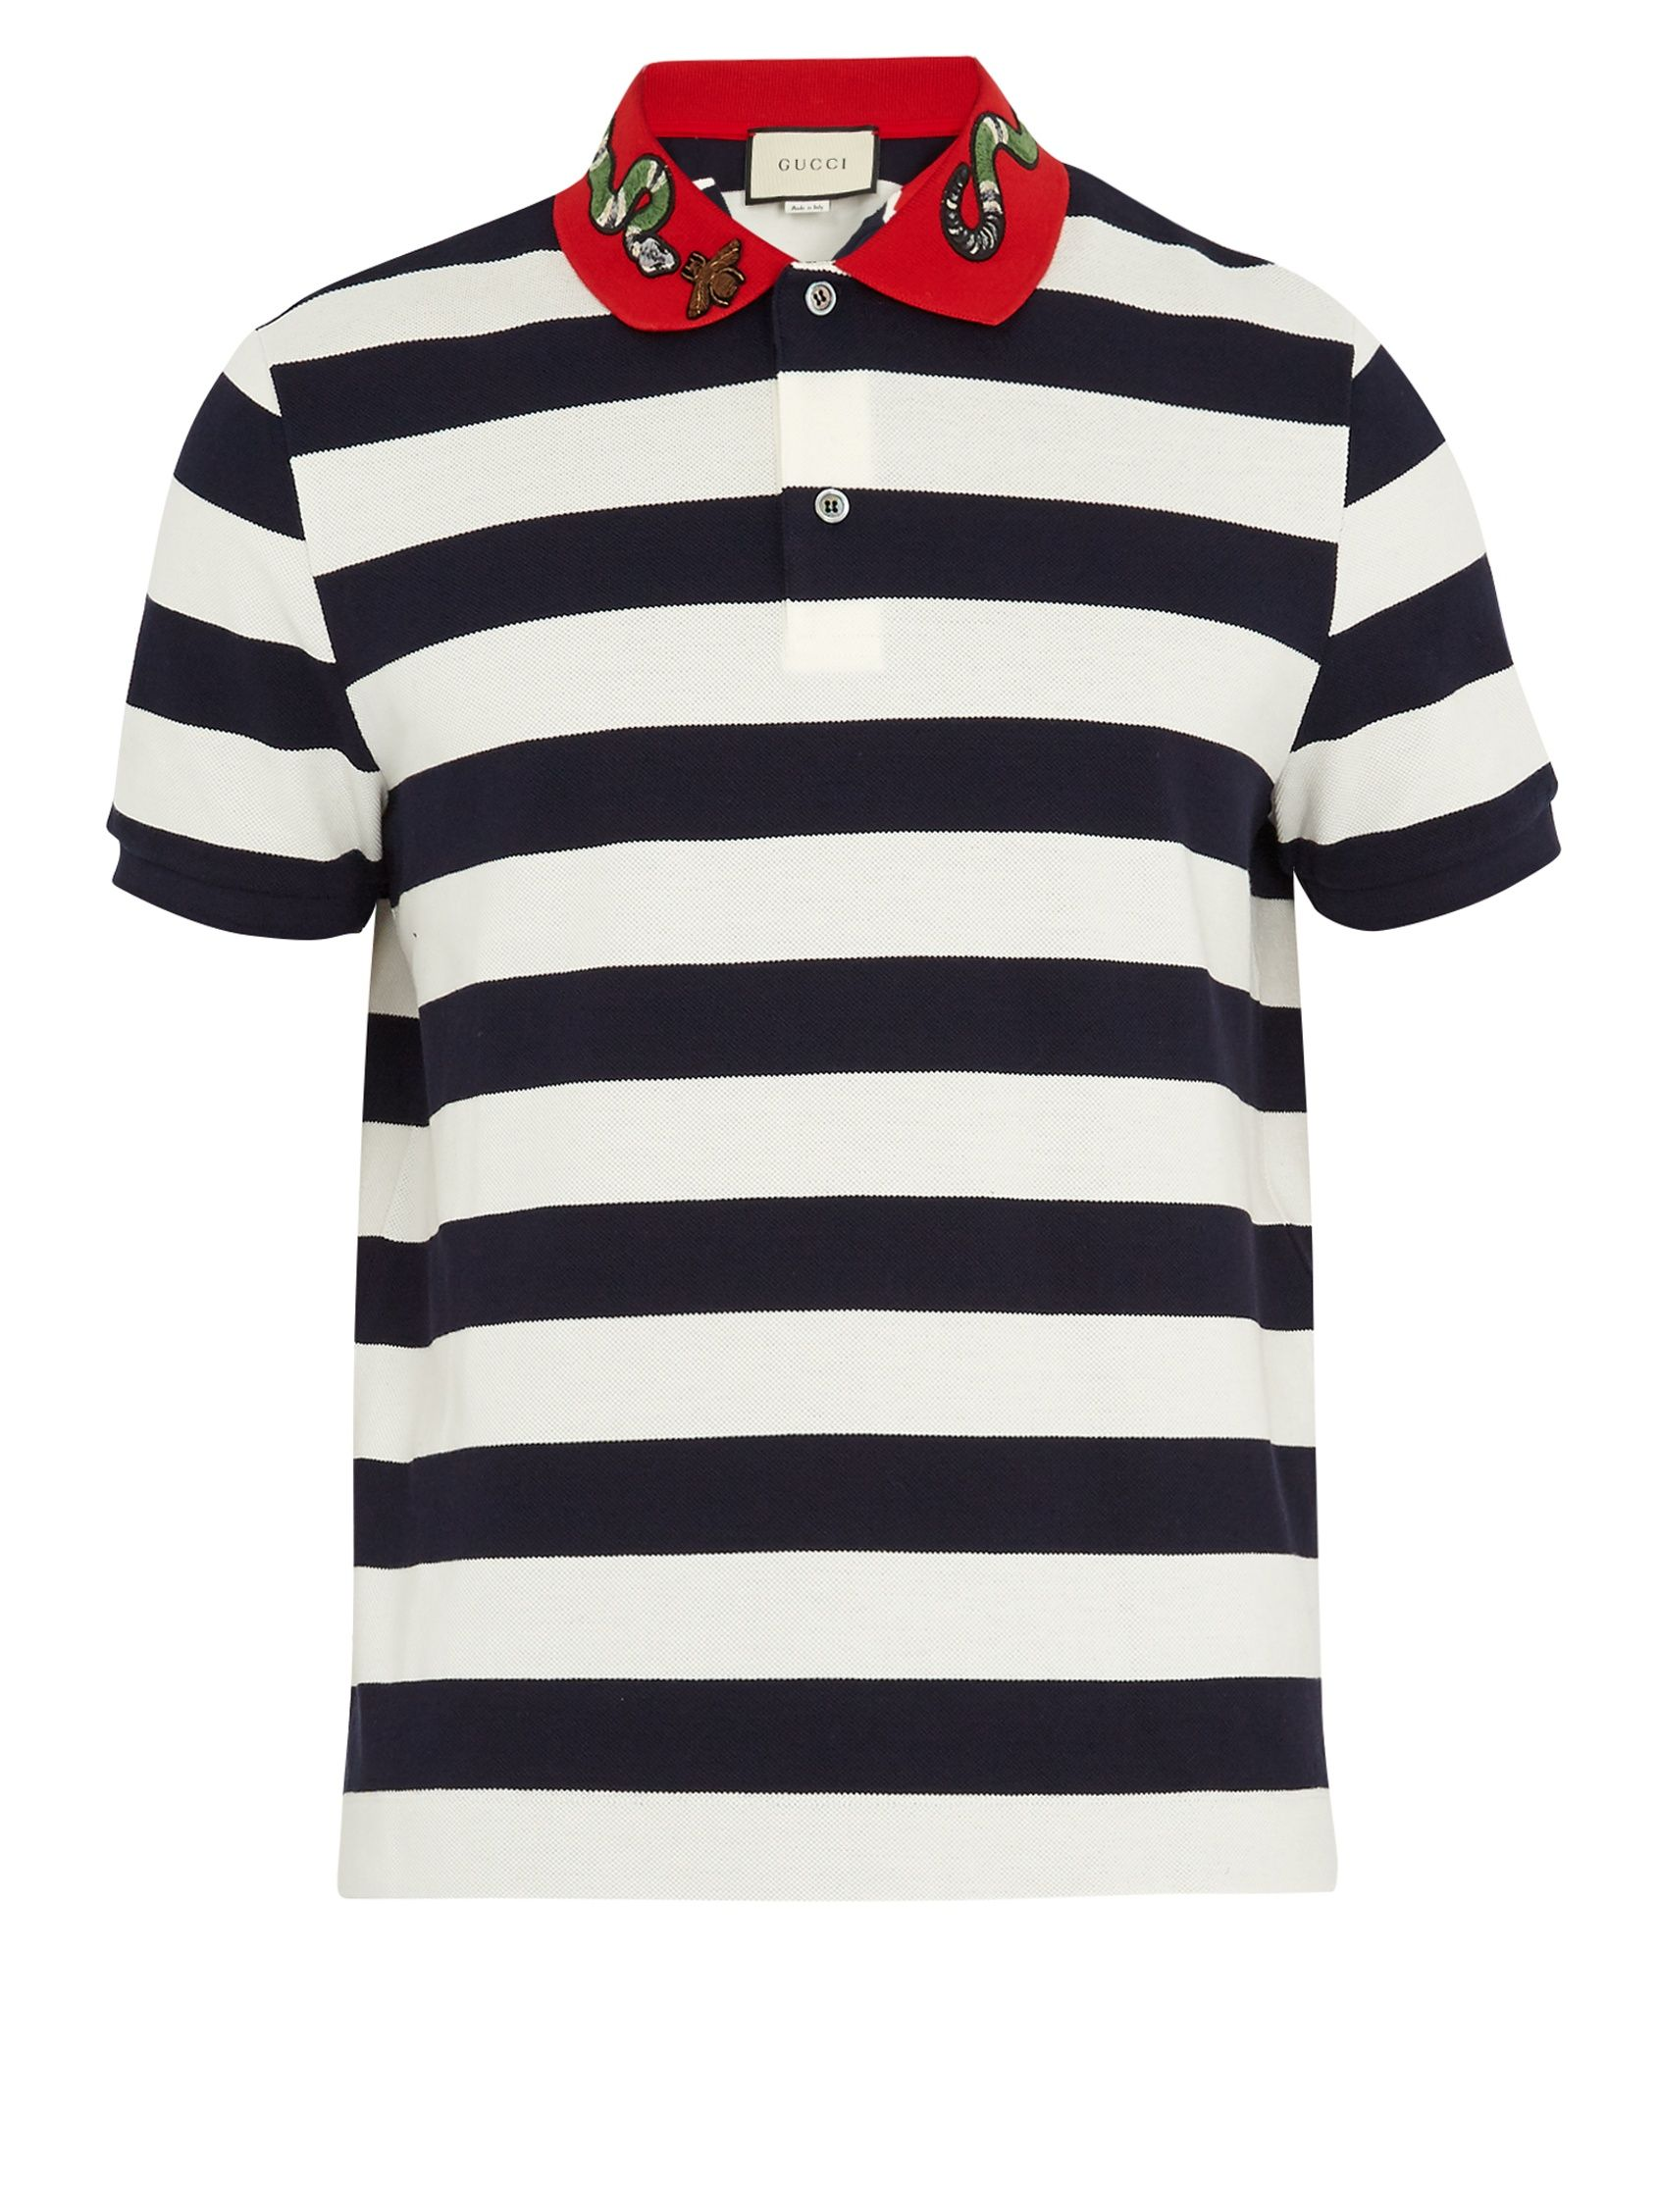 ebe6bfdc567b Click here to buy Gucci Snake-appliqué striped cotton polo shirt at  MATCHESFASHION.COM